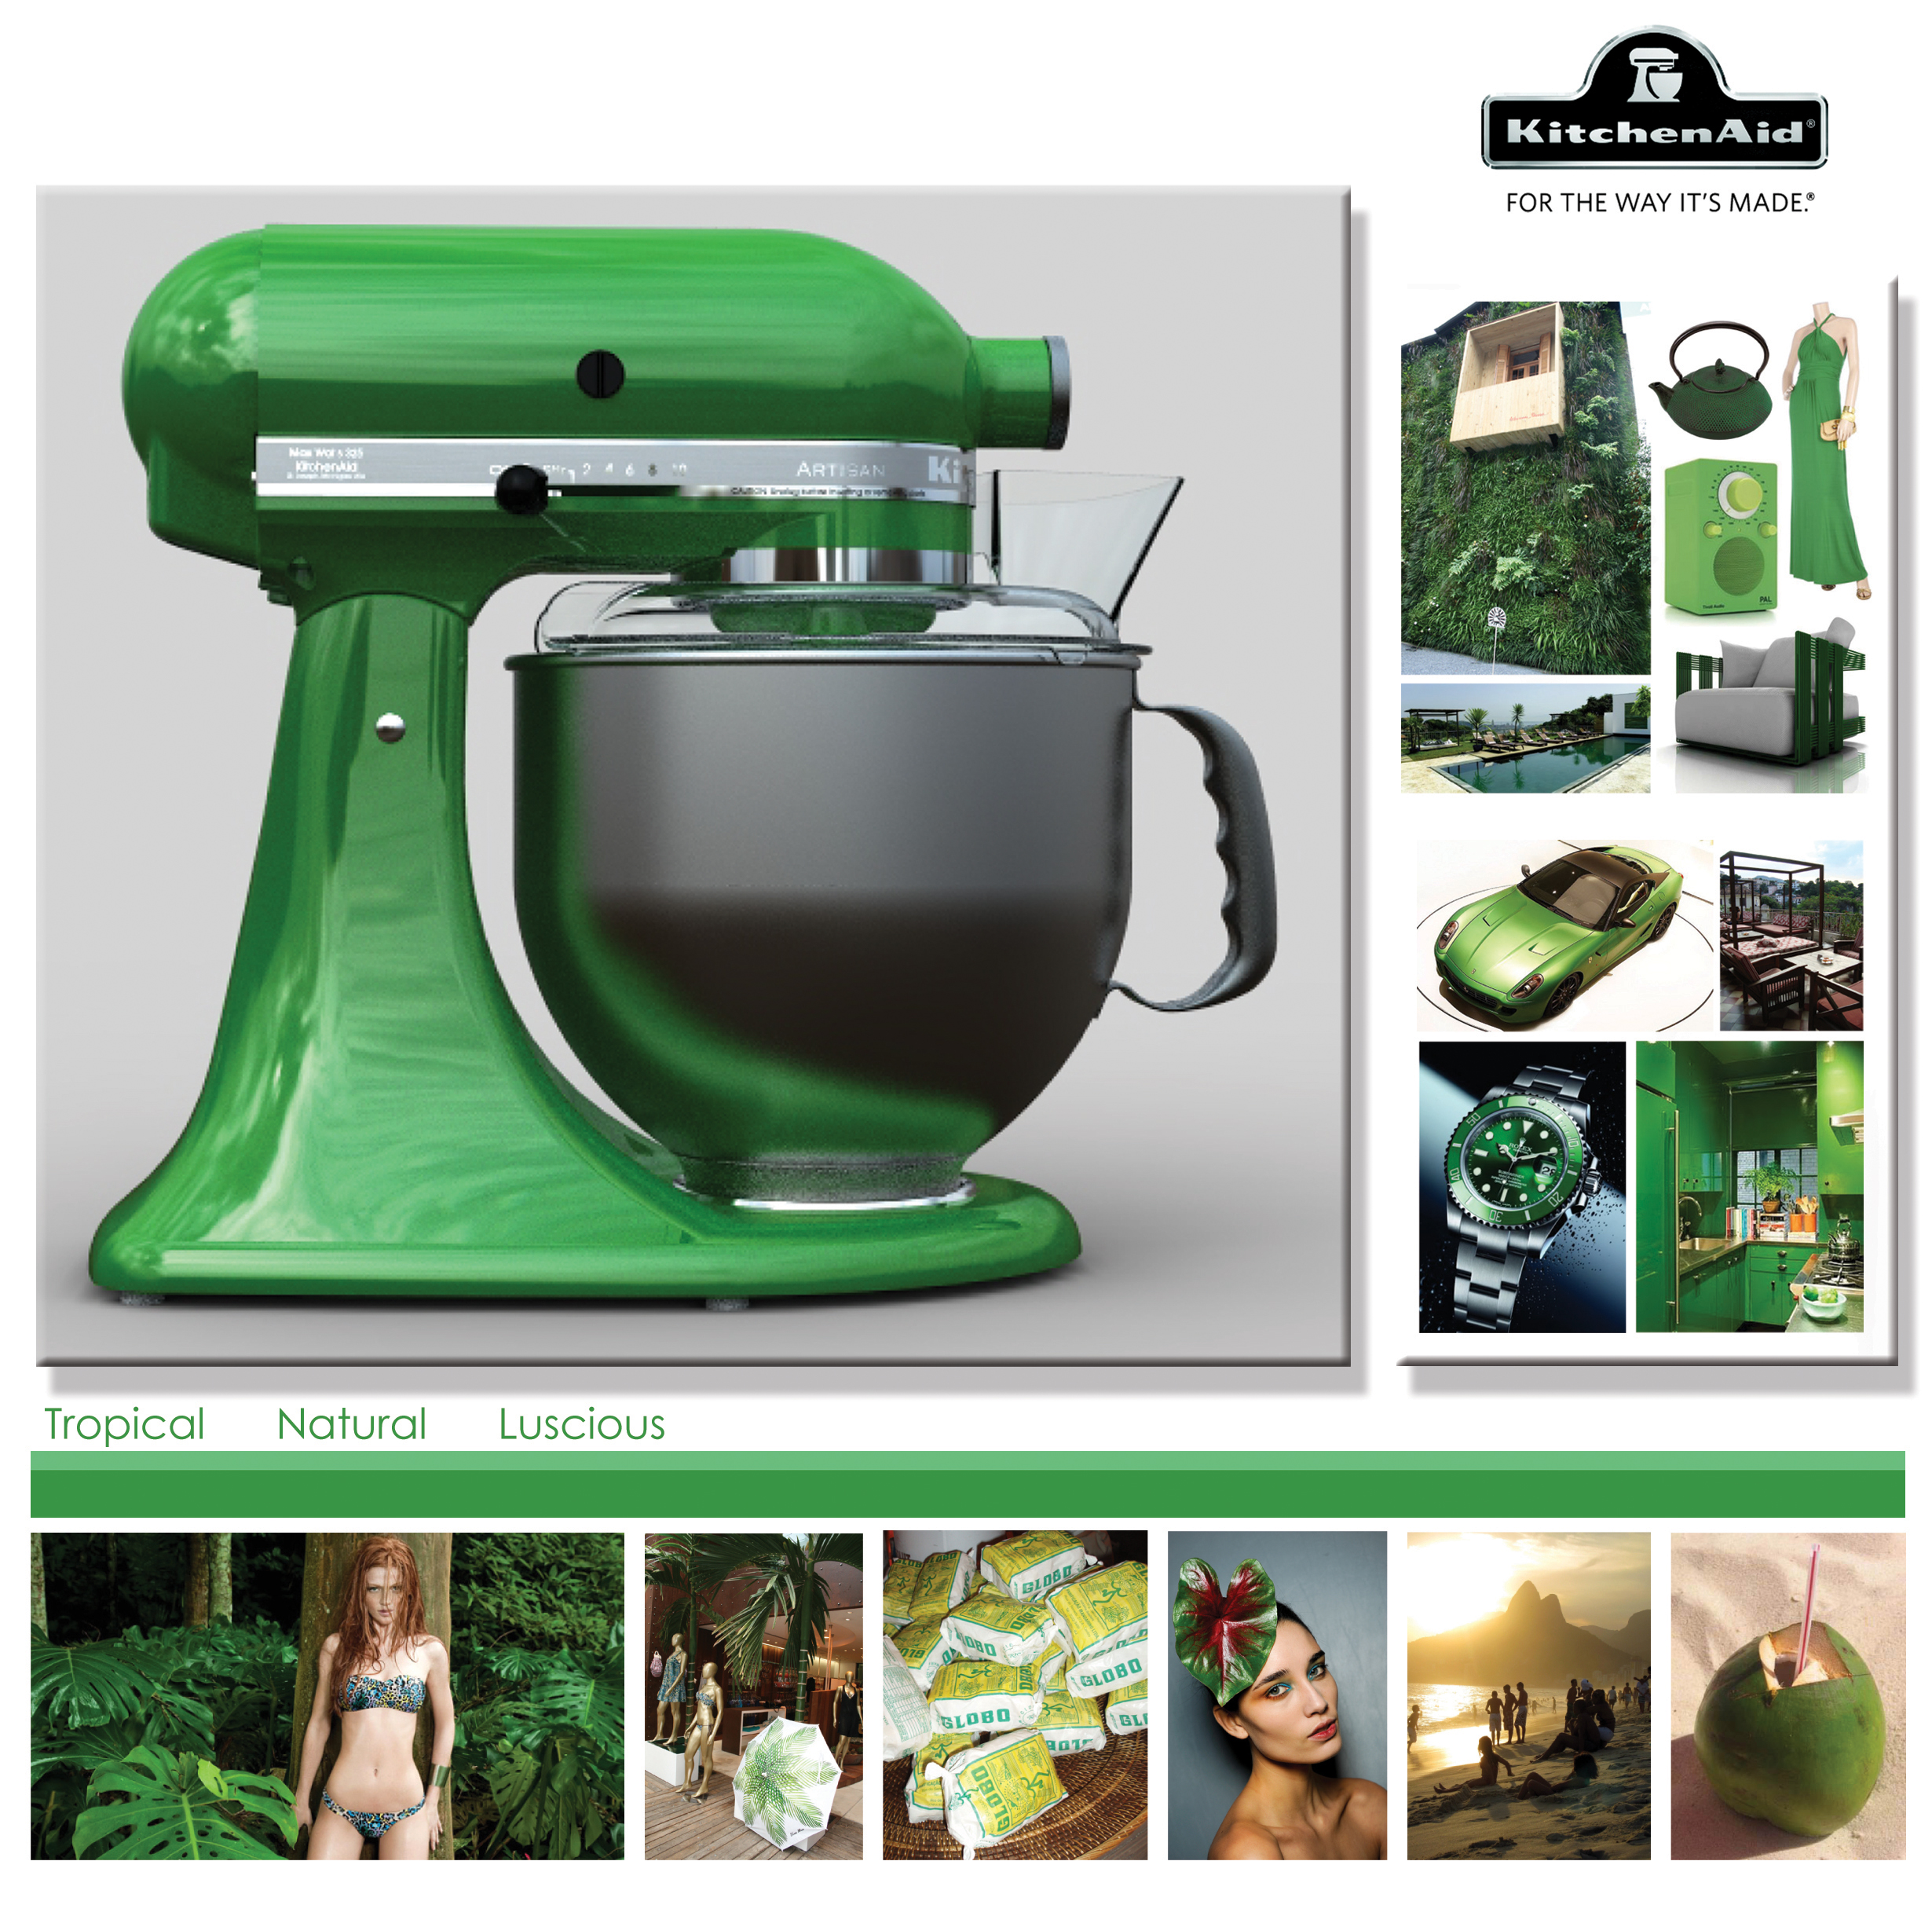 Green kitchenaid stand mixer - The Kitchenaid Stand Mixer Has Been An Icon For Over 90 Years In That Time The Product Has Been Sold Around The Globe Traditionally Marketed As An